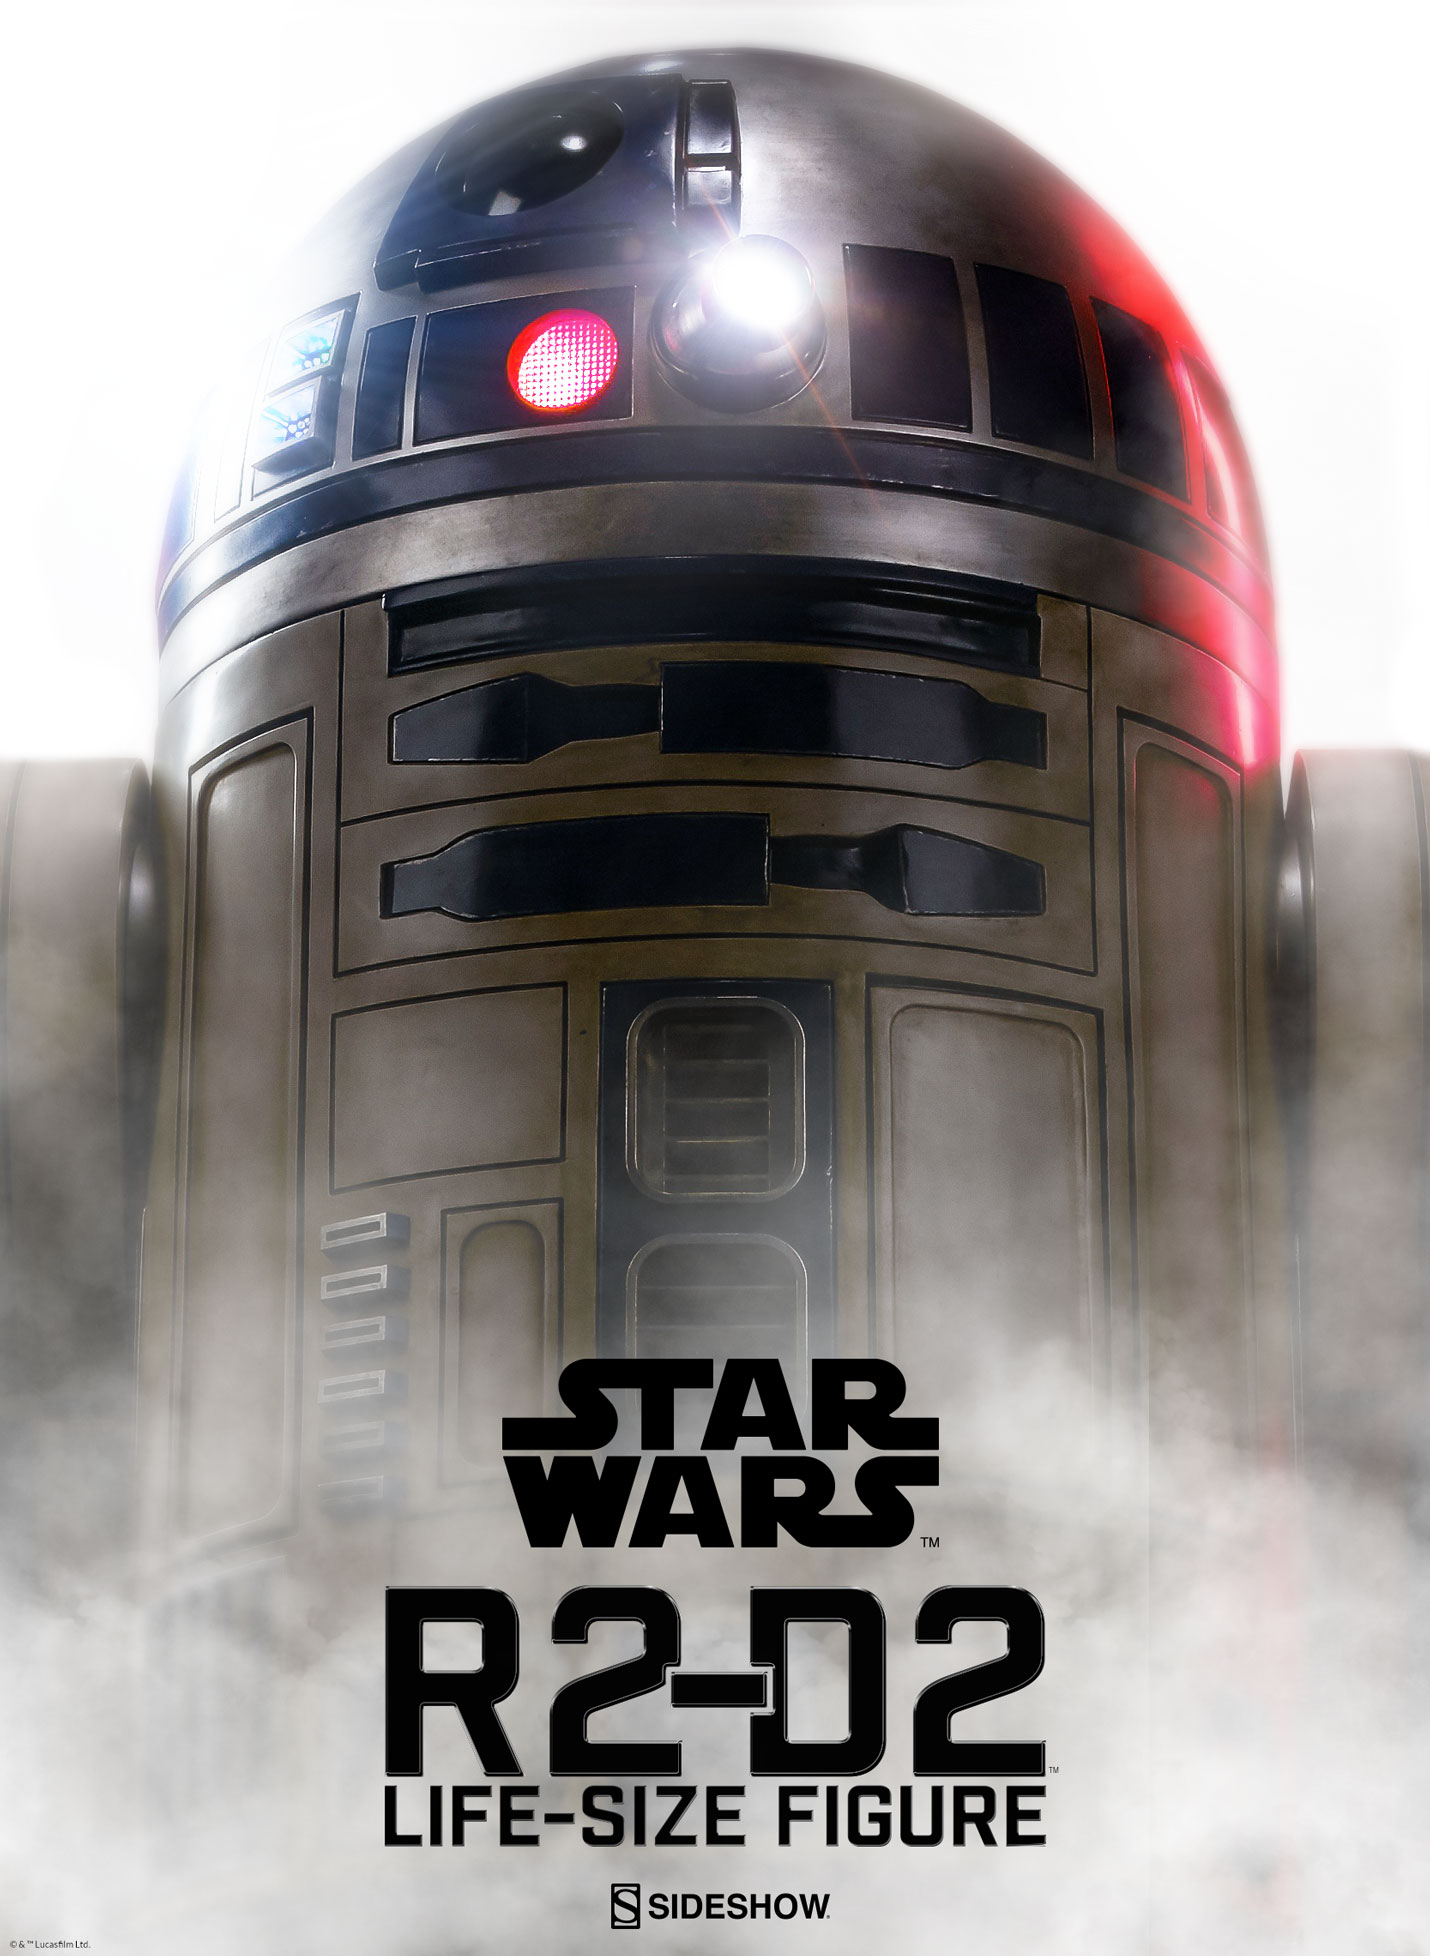 Sideshow Star Wars R2-D2 Life Size Figure